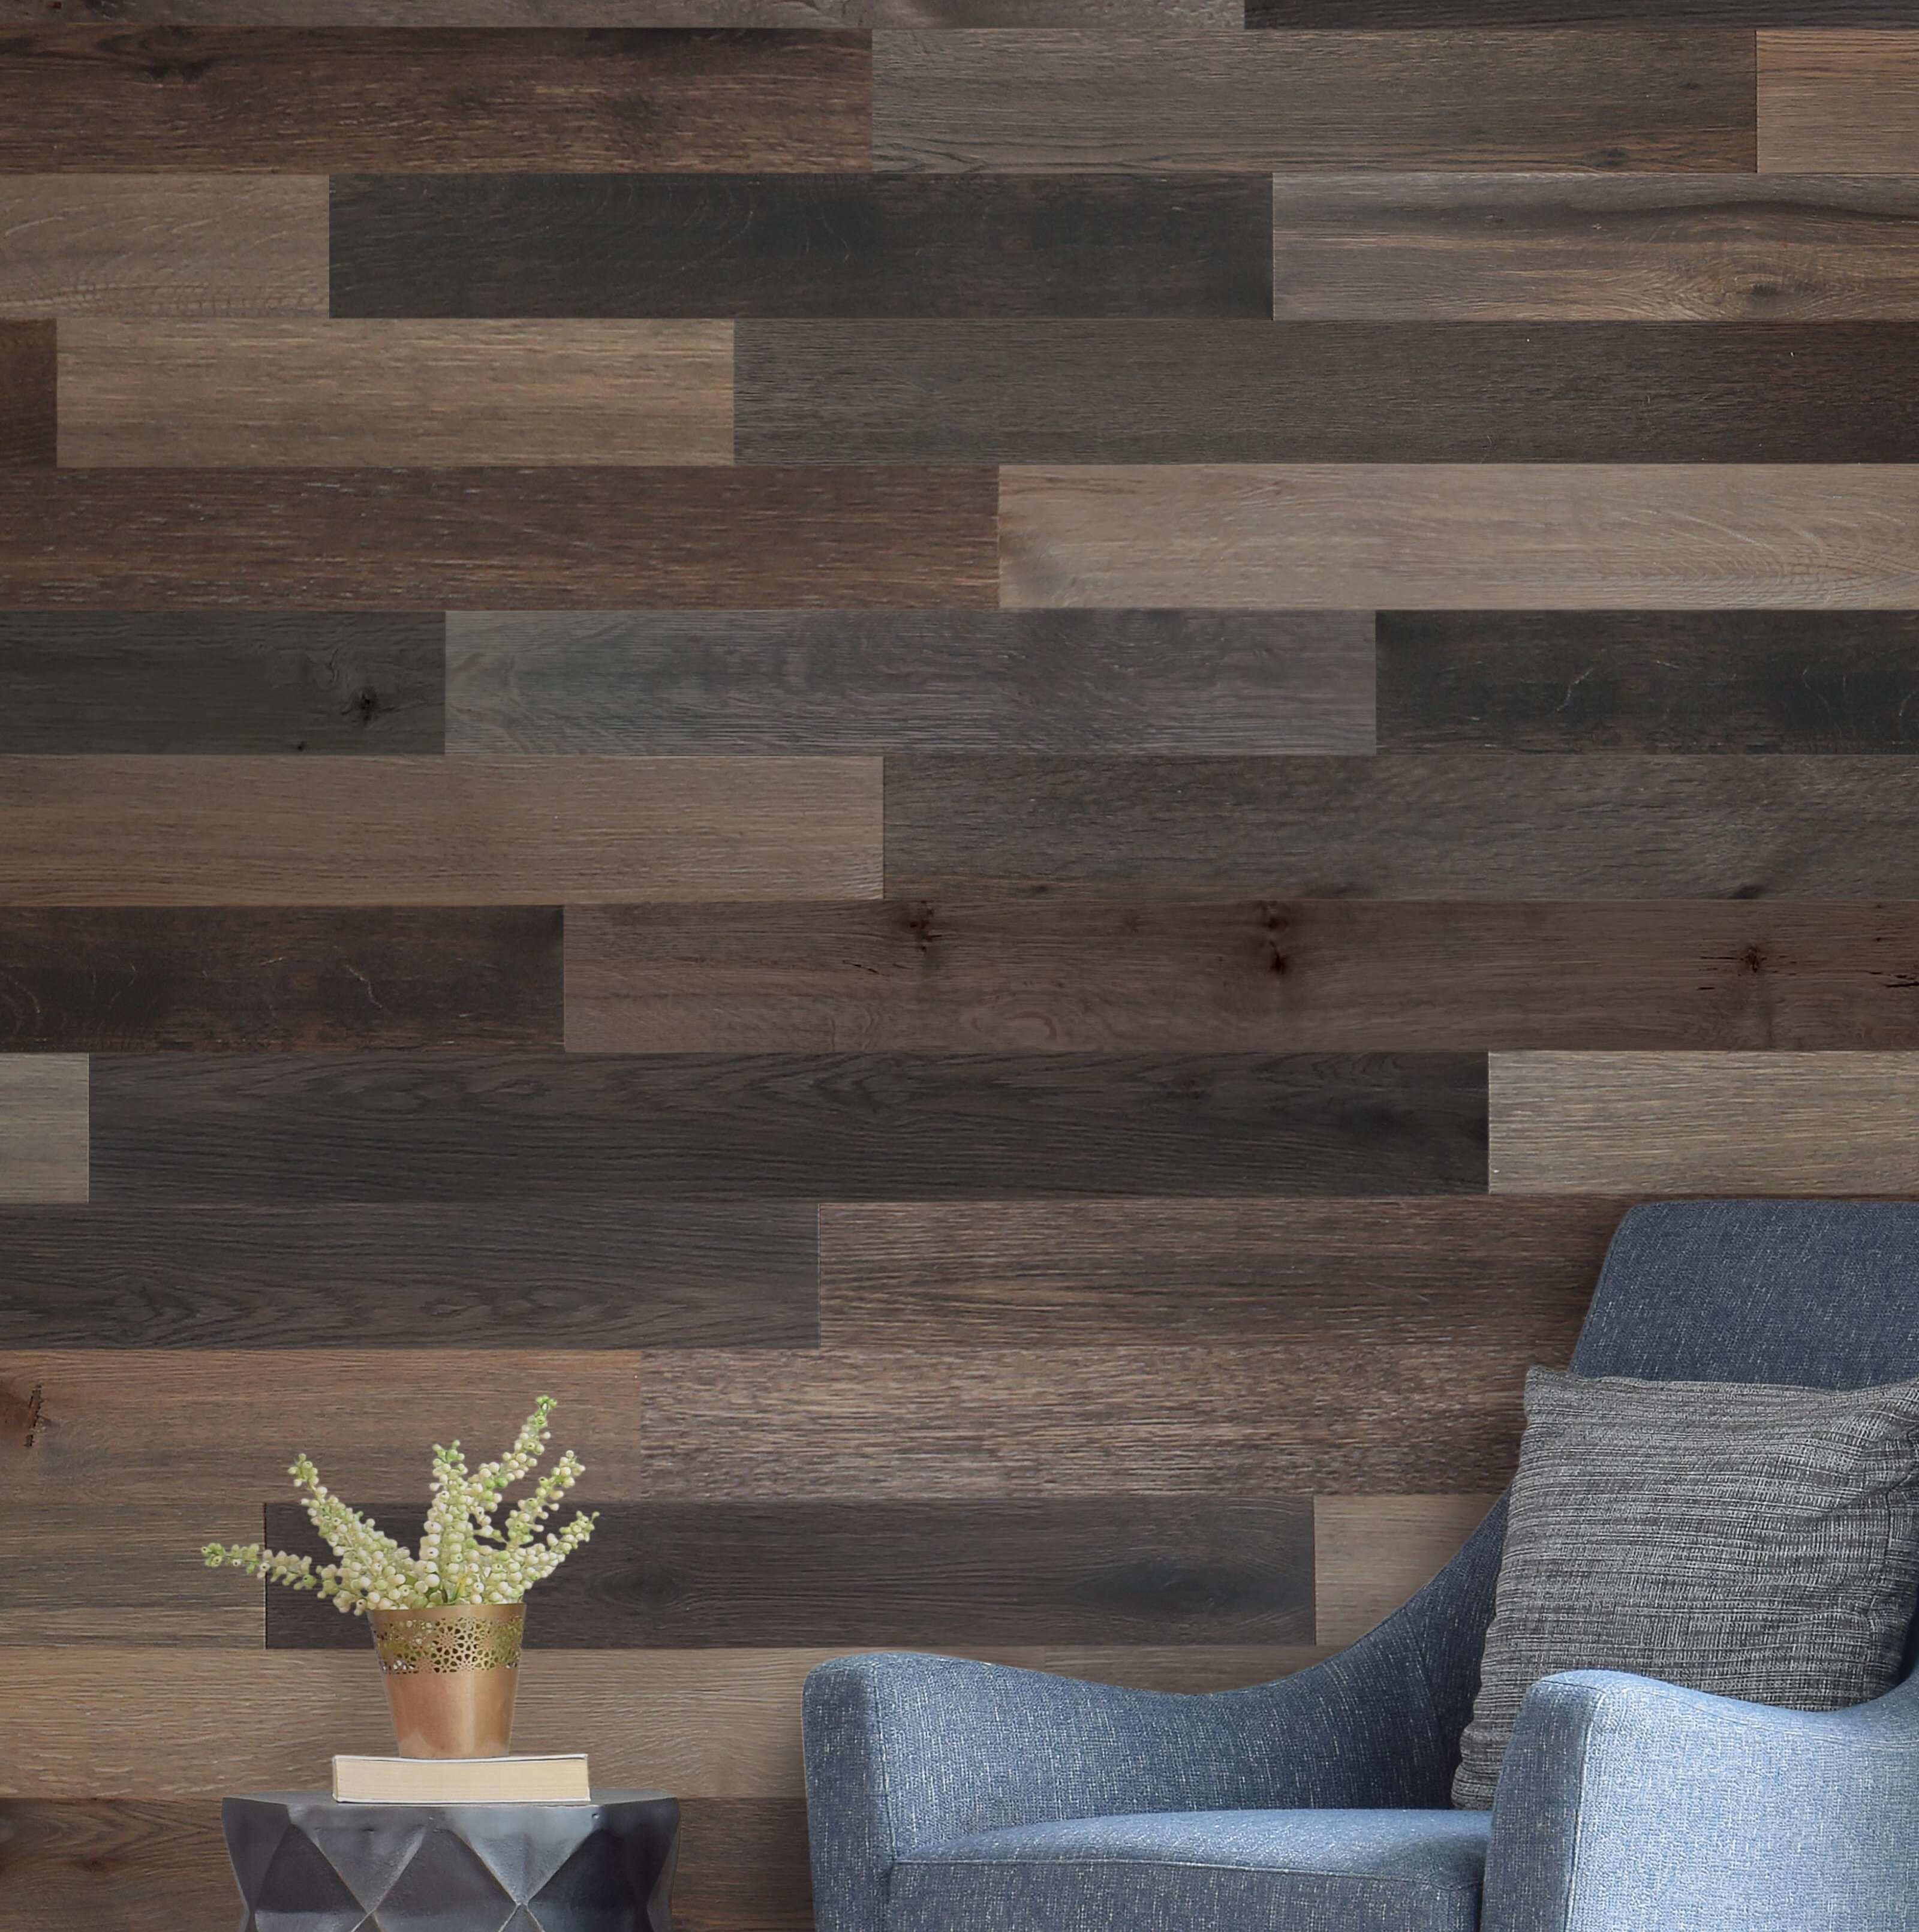 Paneling Wood pictures recommend dress for everyday in 2019